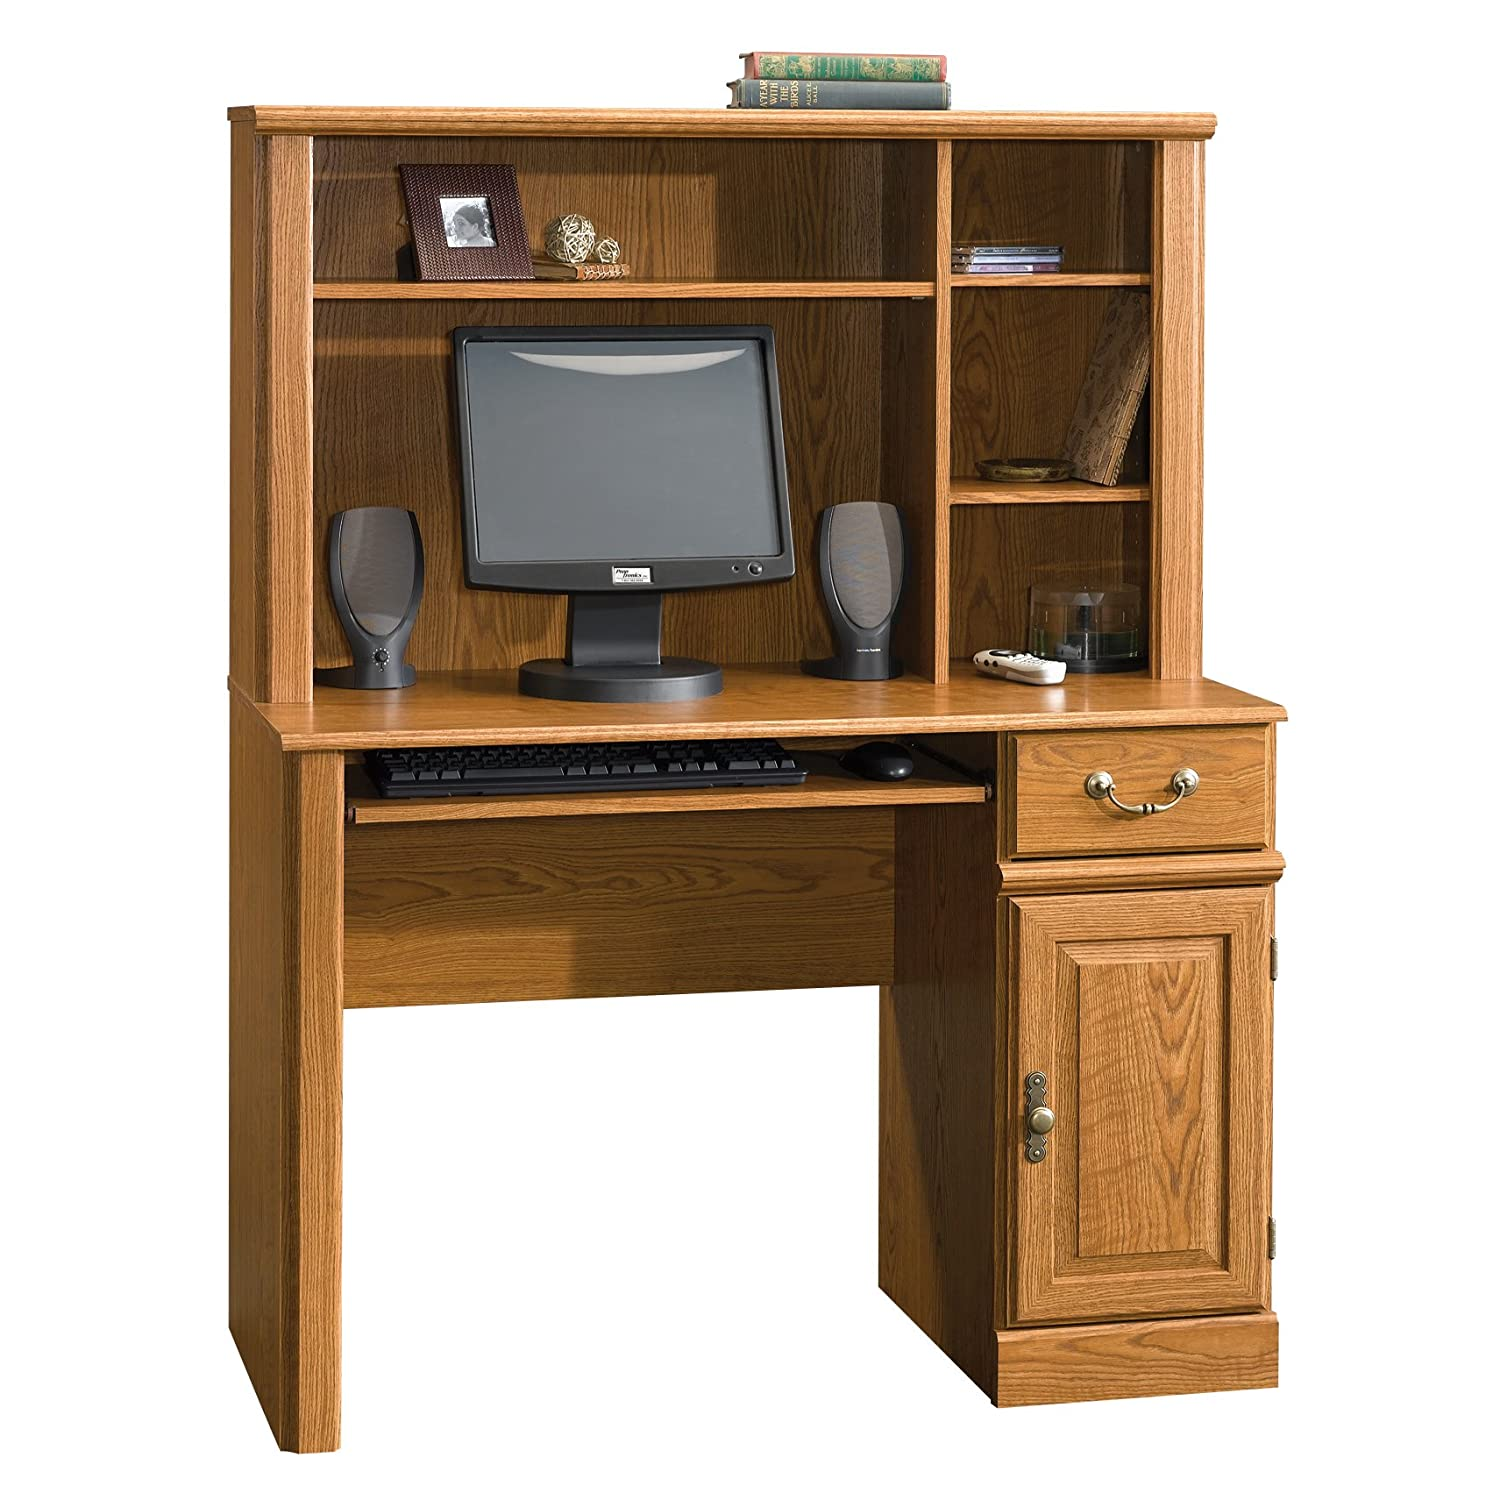 hutch desk category mounted wall bookshelves furniture product hutches office storage classic